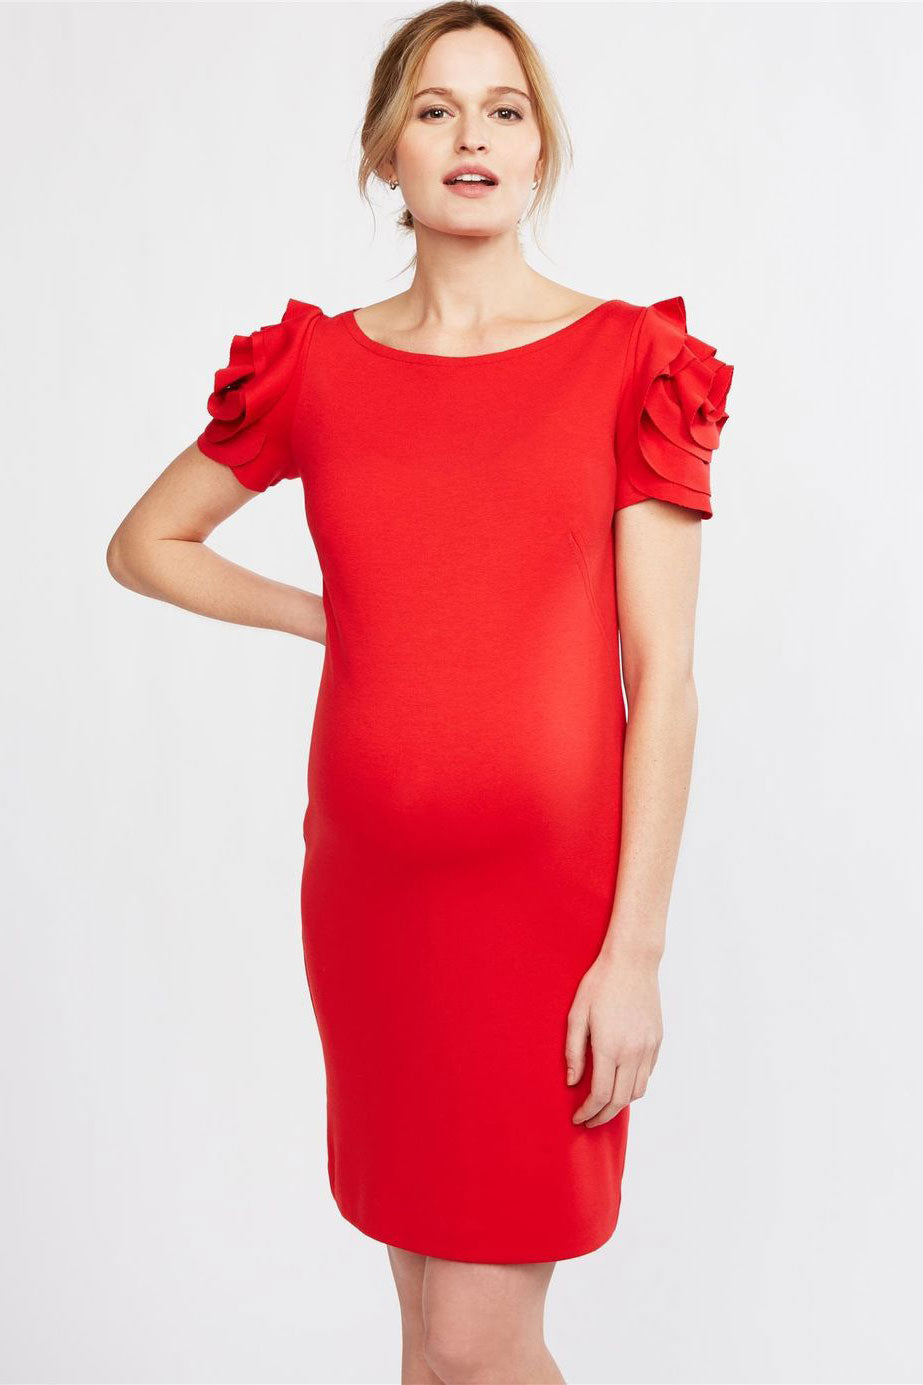 Pietro Brunelli Milano Flower Sleeve Maternity Dress in Passion Red